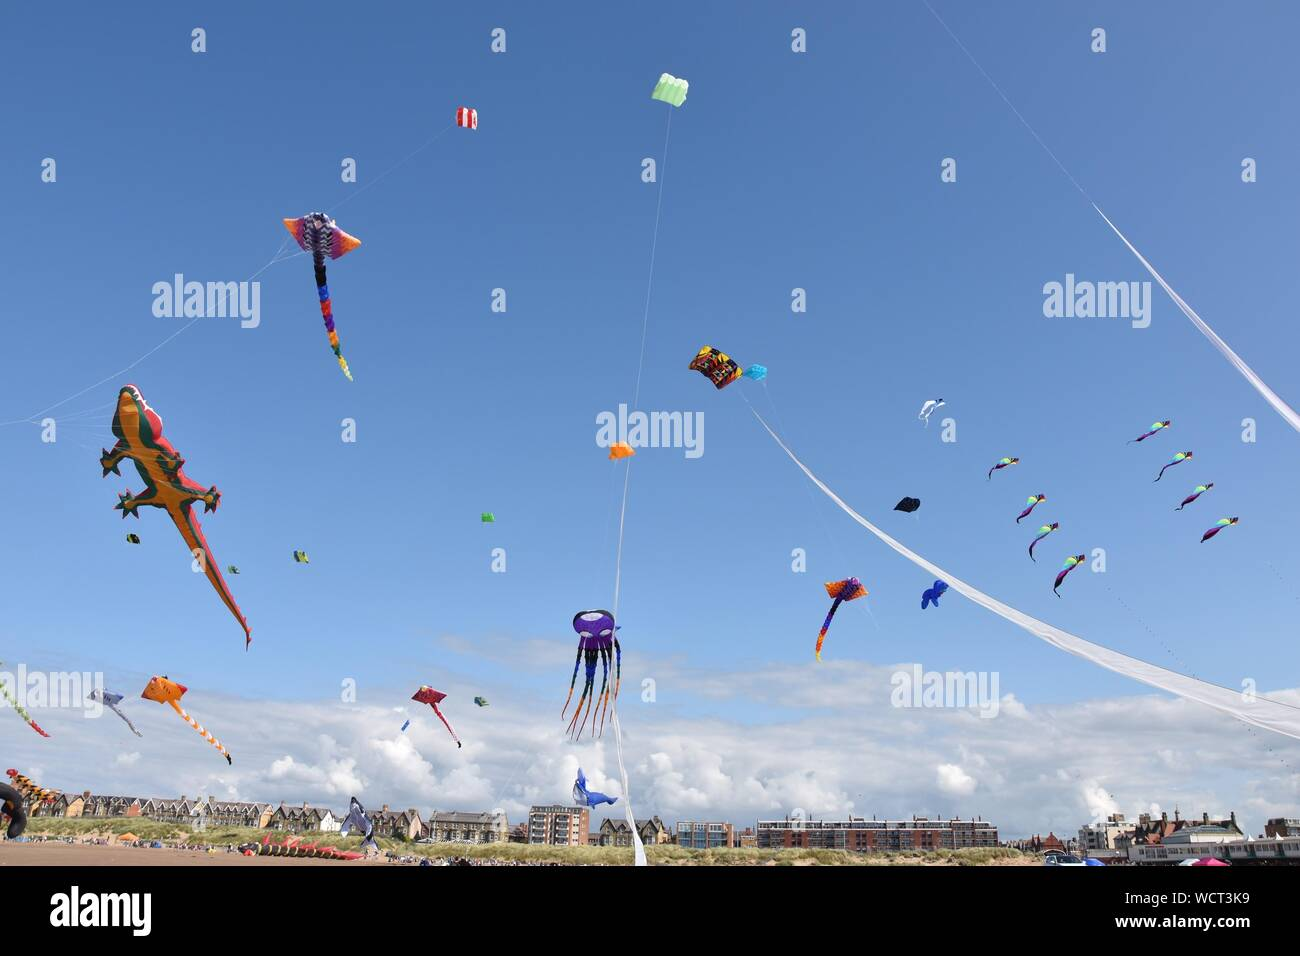 Low Angle View Of Kites Flying Against Blue Sky Stock Photo